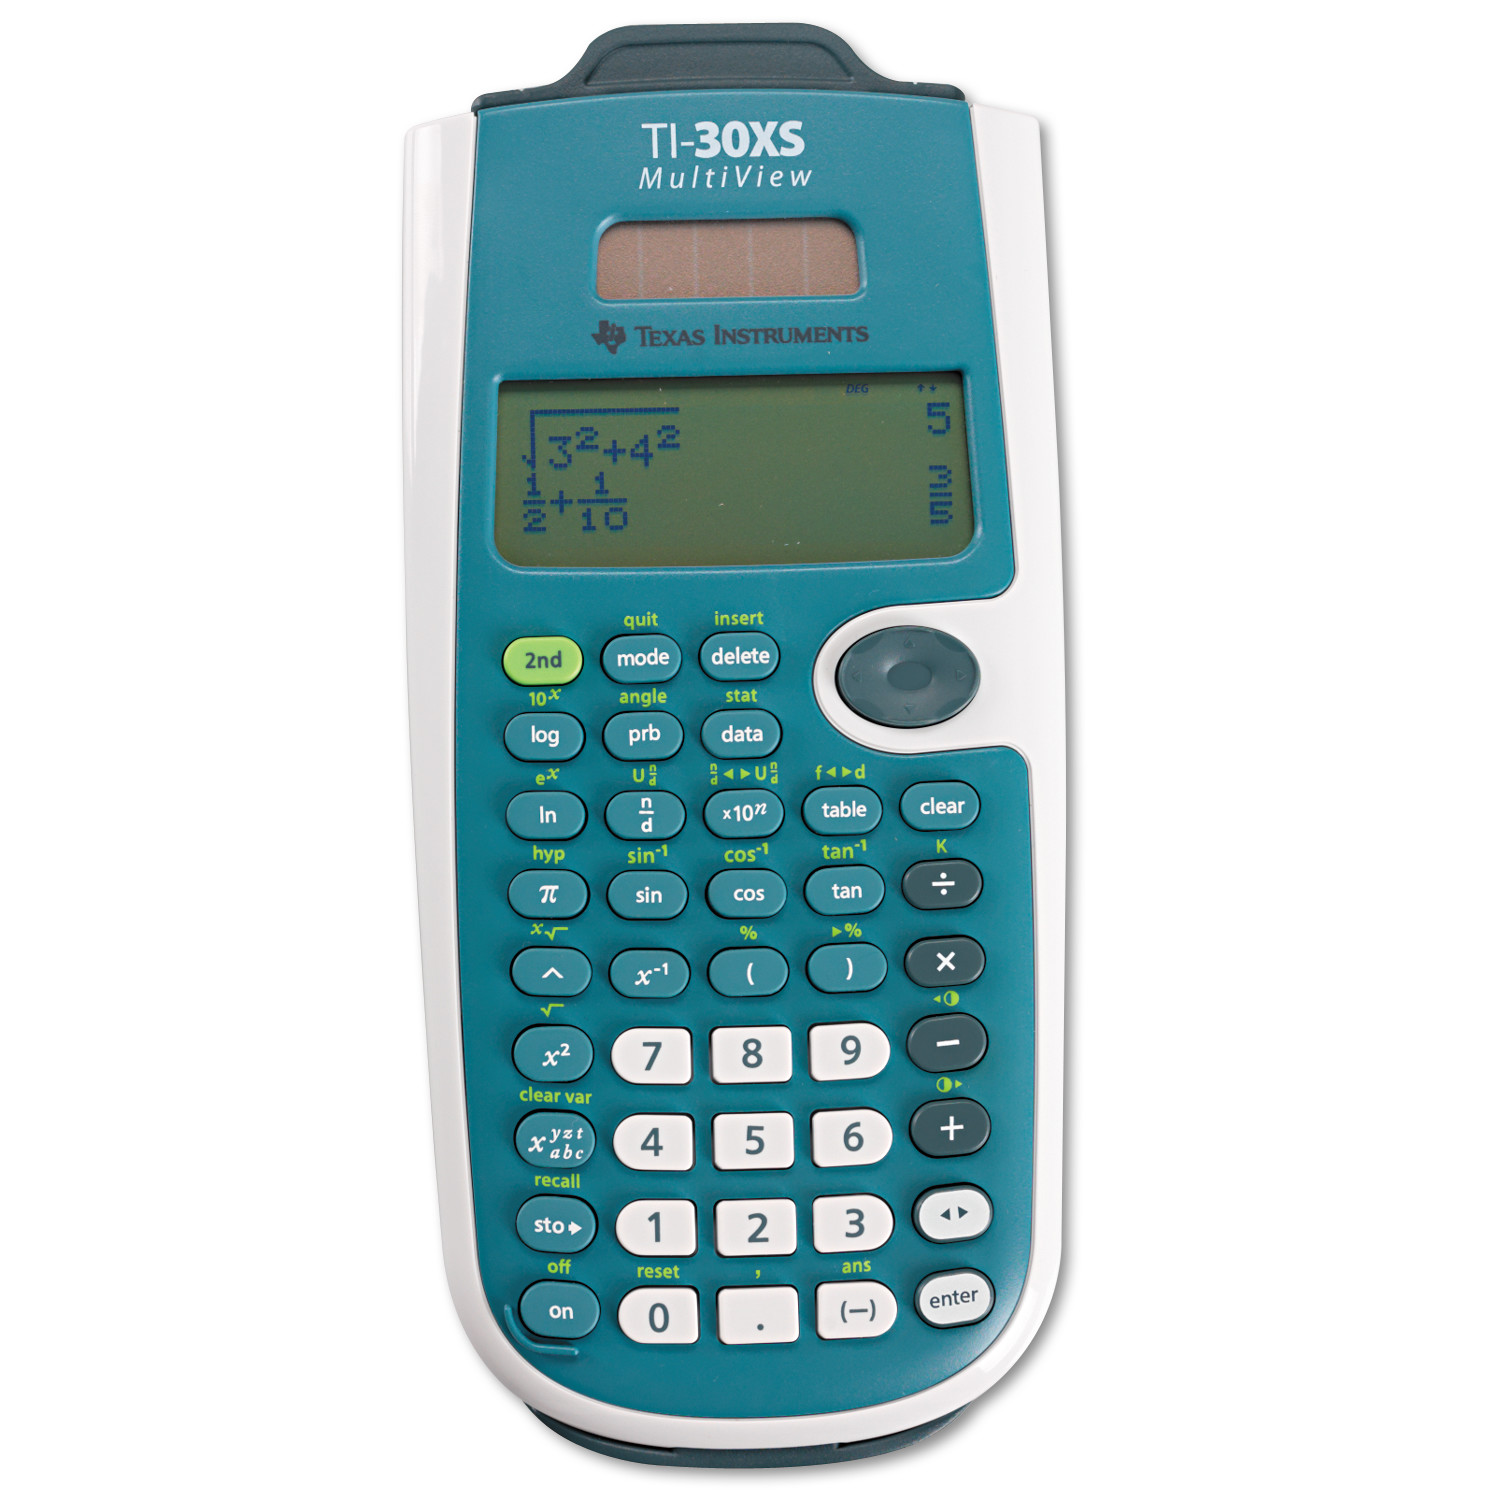 Texas Instruments TI-30XS MultiView Calculator by Texas Instruments, Inc